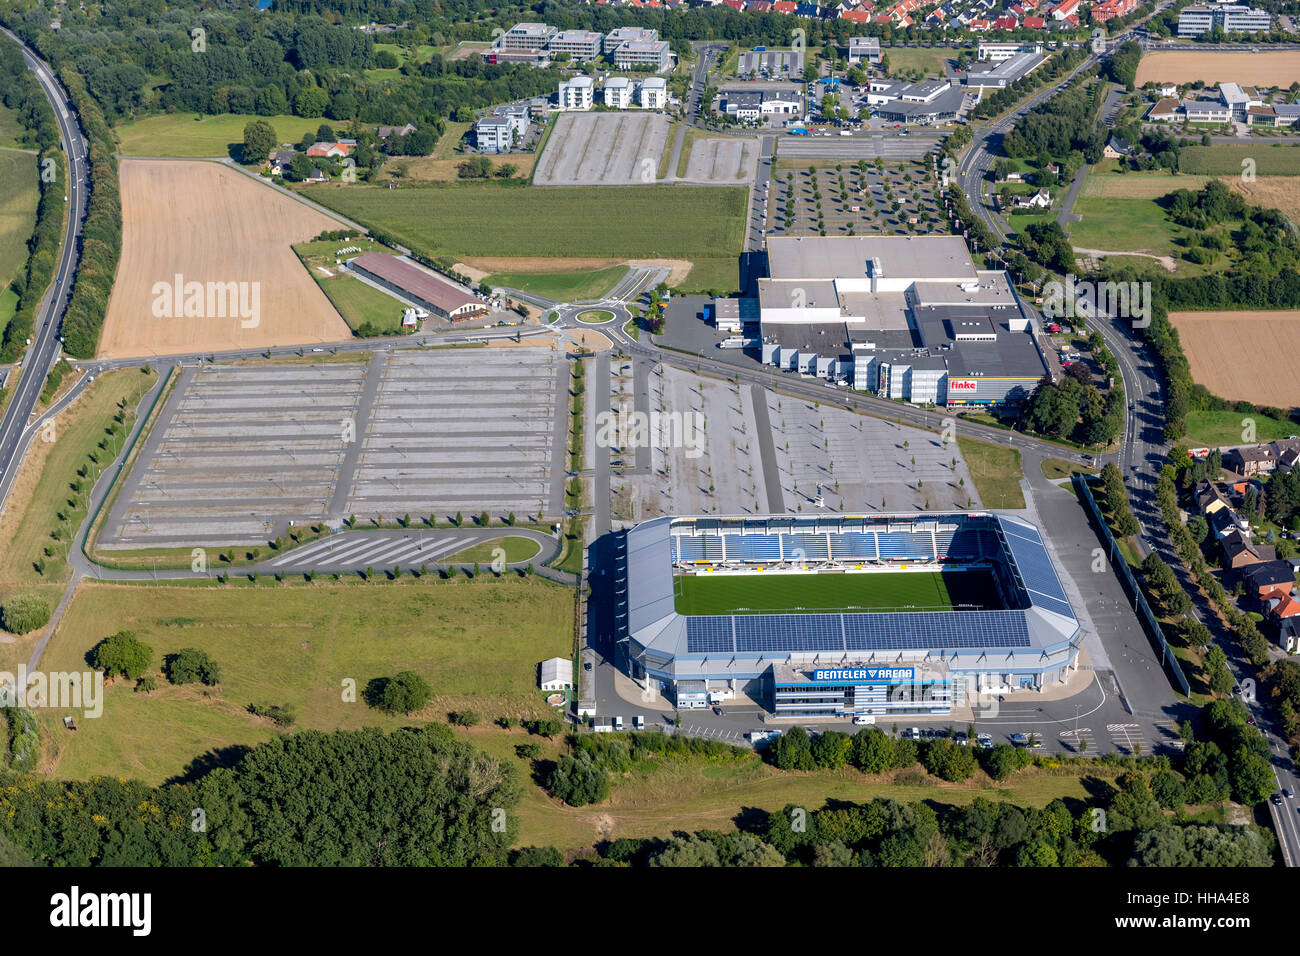 Benteler Arena, soccer stadium in Paderborn, home ground of second division SC Paderborn 07, Soccer, Second Bundesliga, - Stock Image